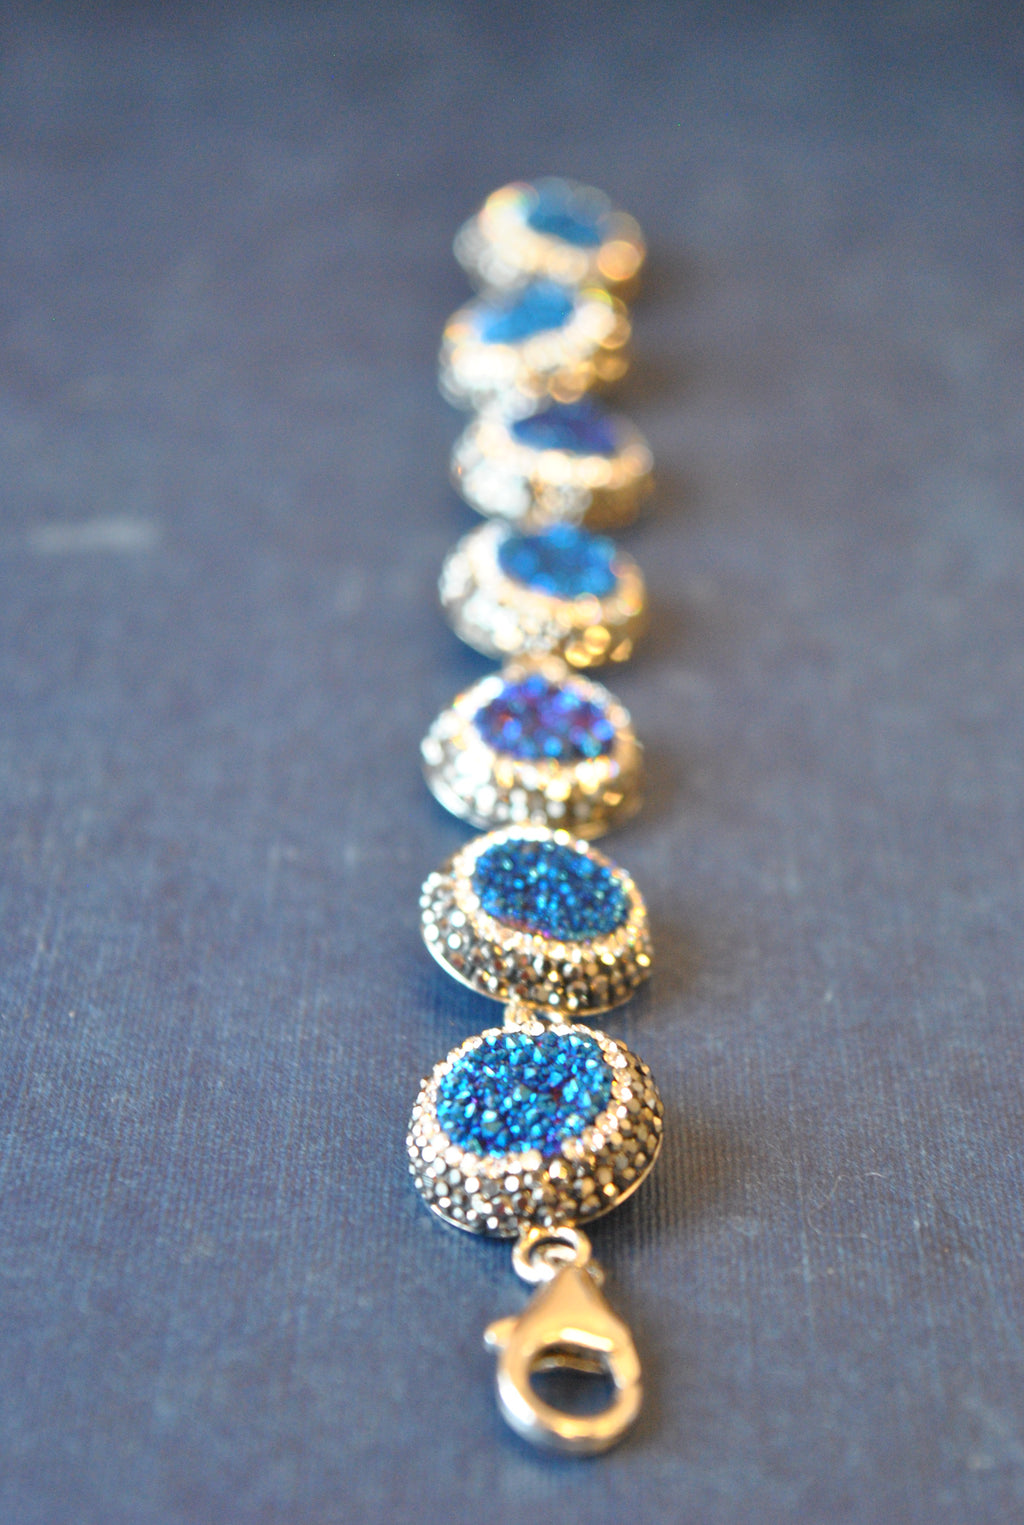 ROYAL BLUE DRUZY AND SWAROVSKI CRYSTALS BRACELET